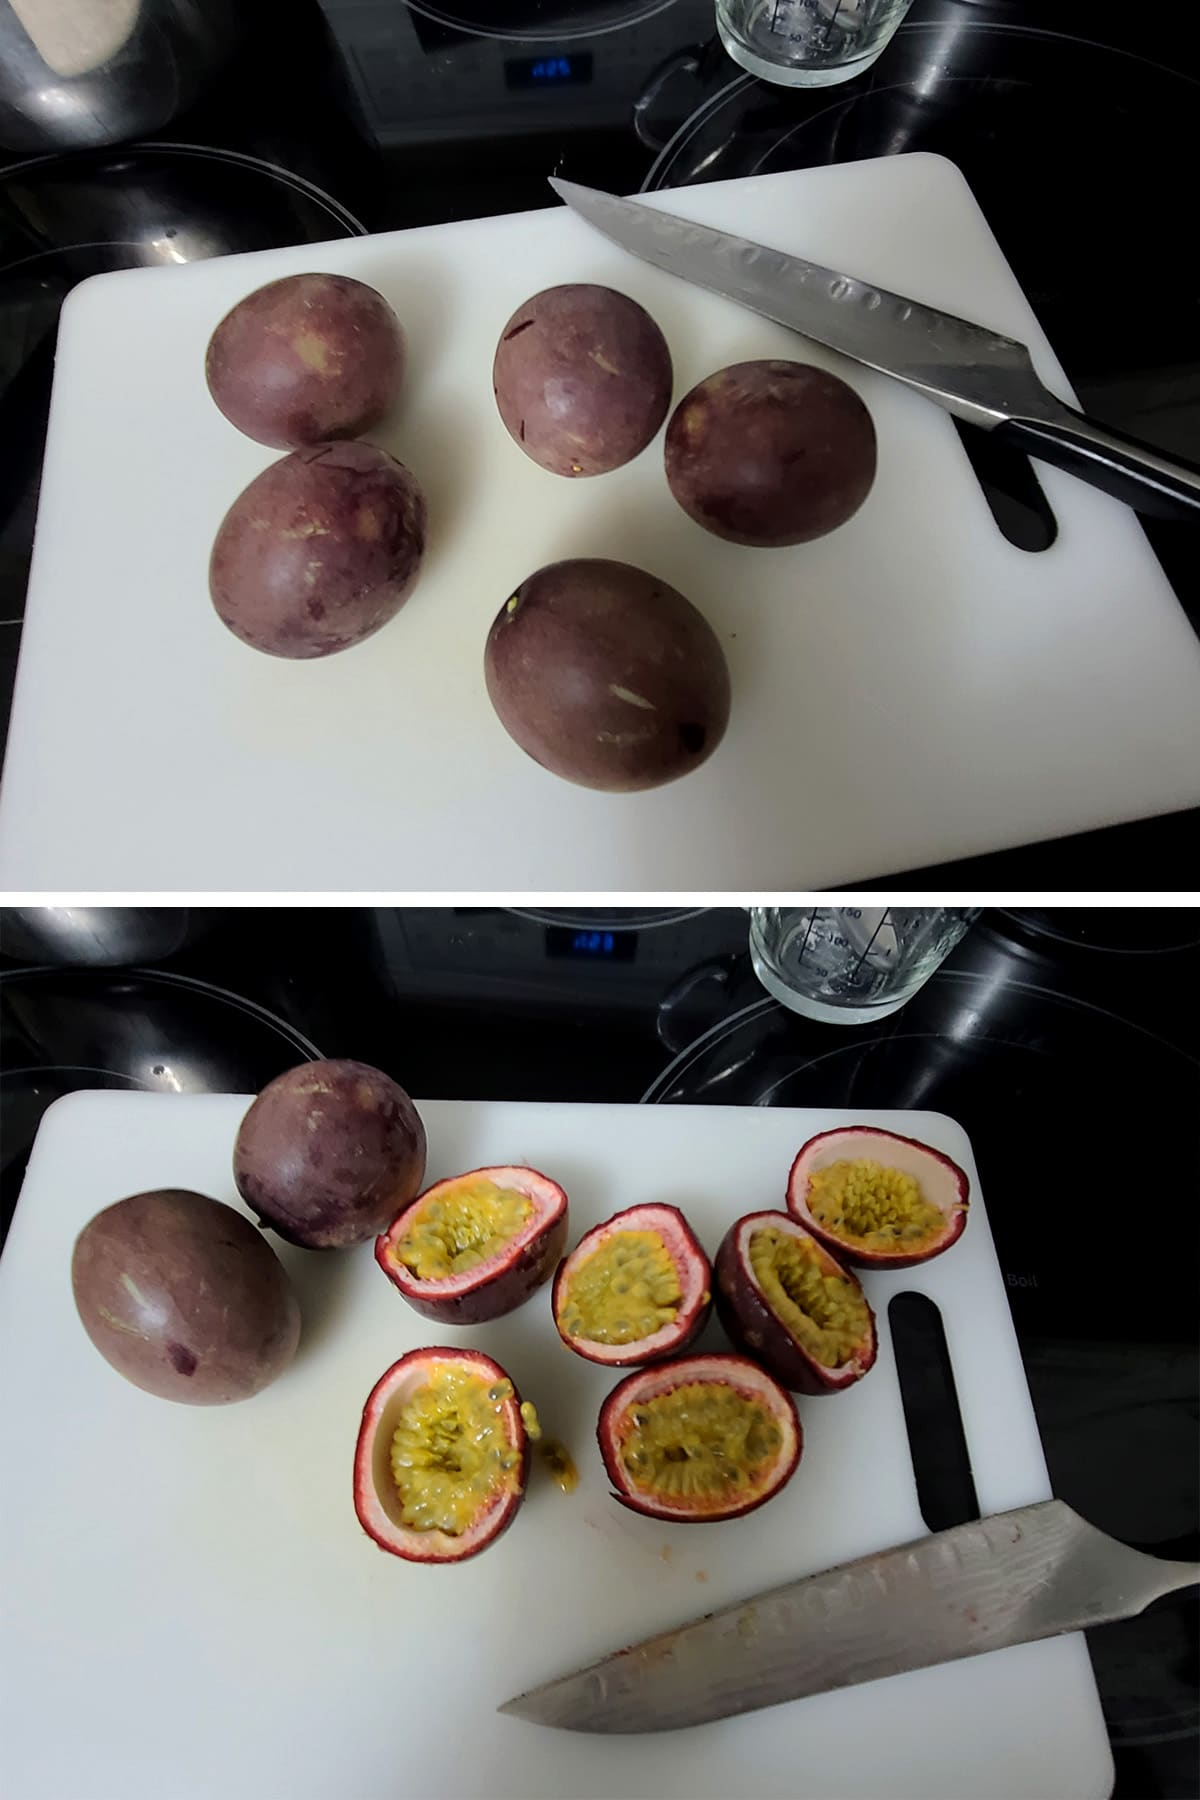 Passion fruits being sliced in half on a cutting board.